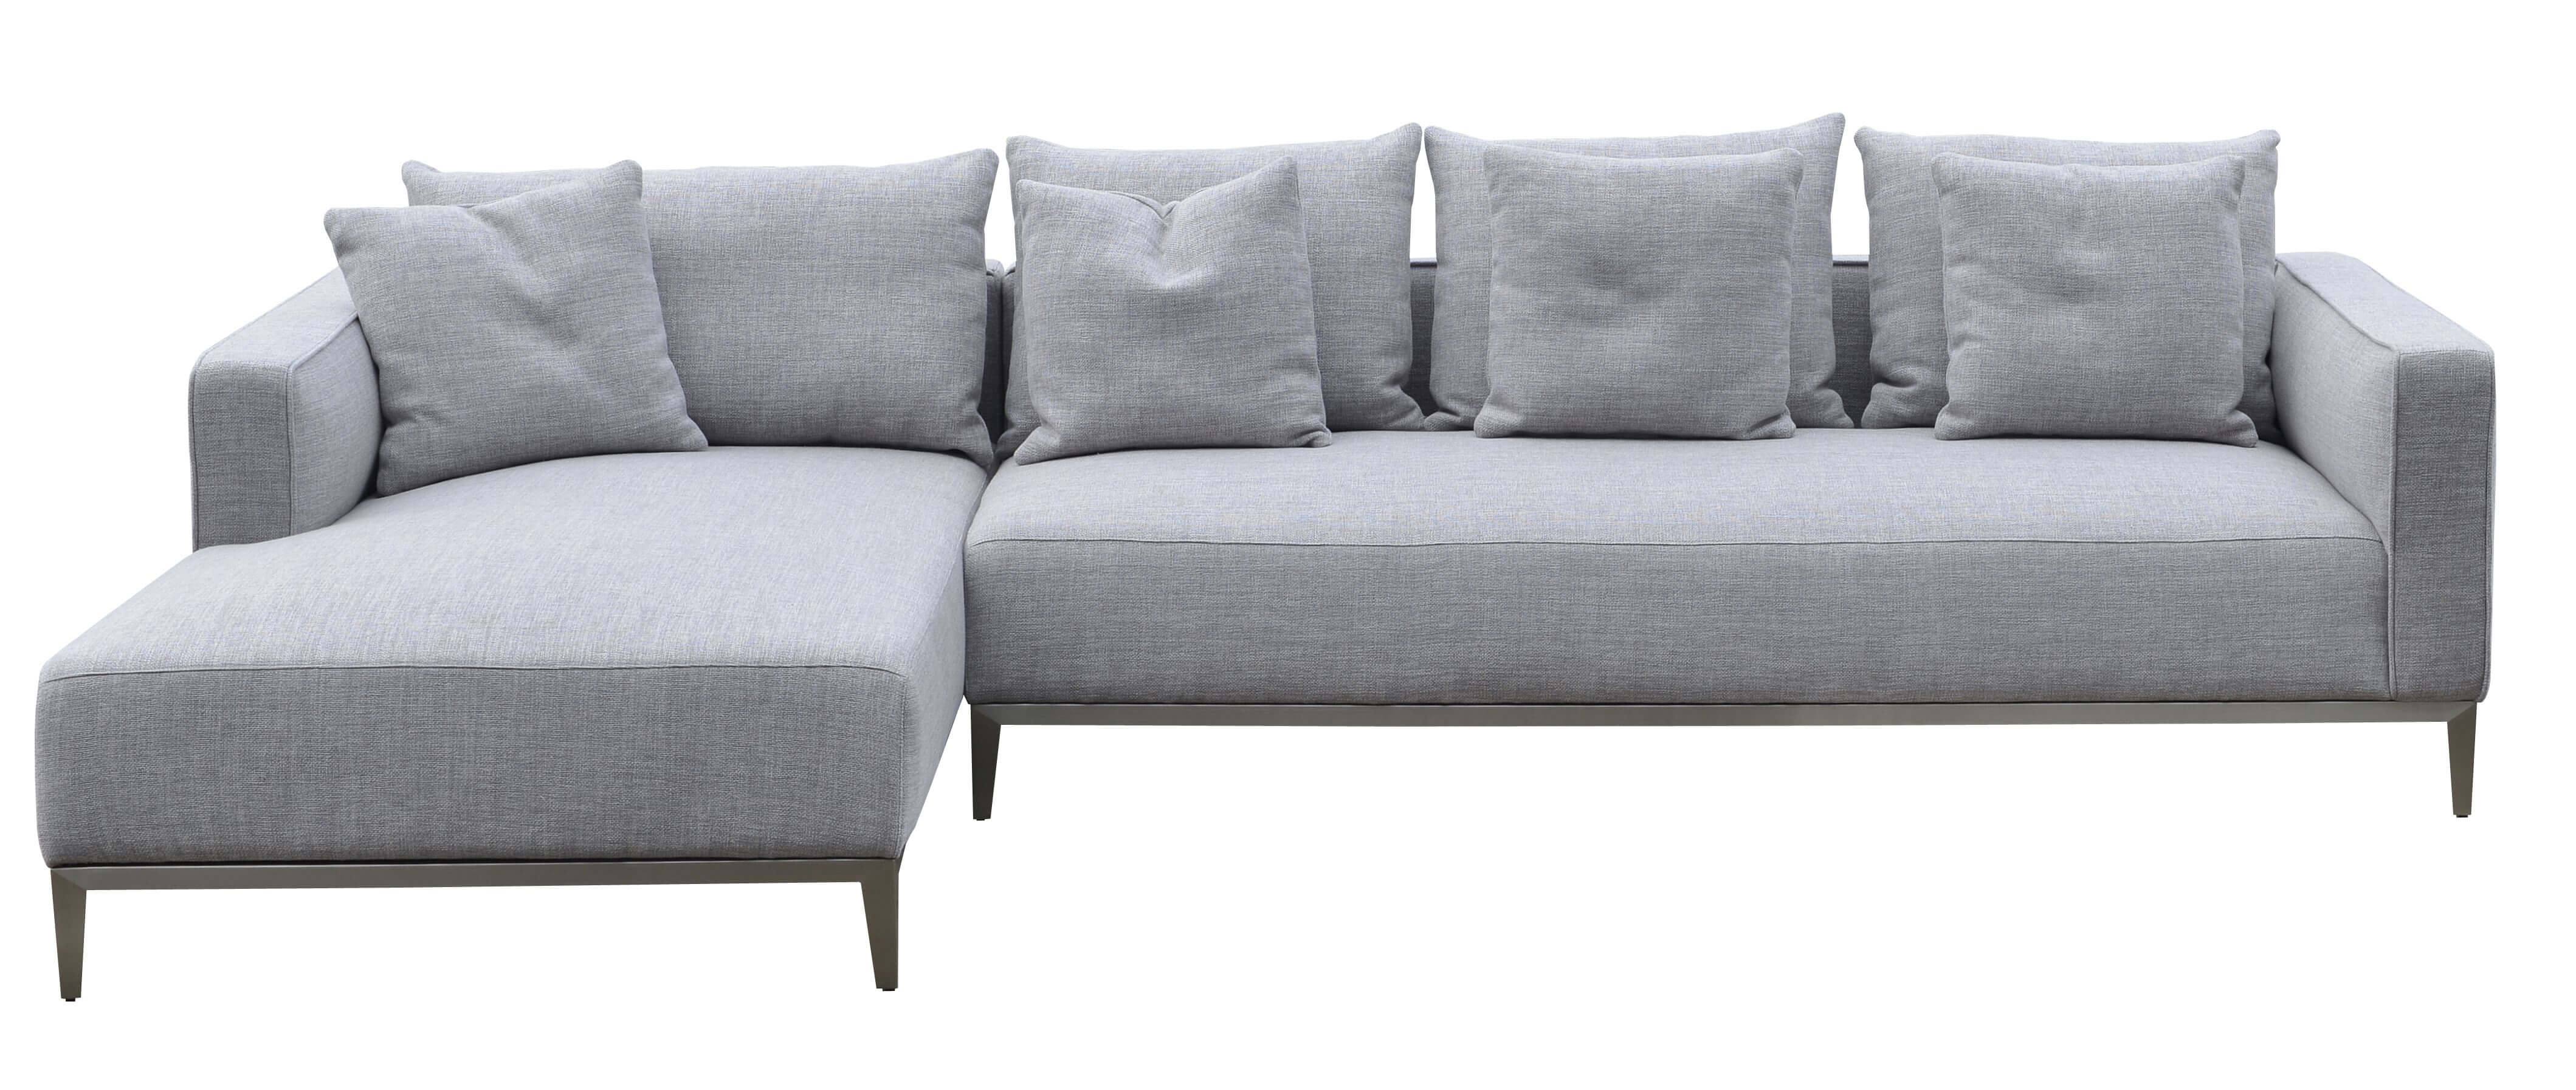 Marvelous California Sectional Small Right Arm Chaise Black Base Grey Tweed Download Free Architecture Designs Scobabritishbridgeorg